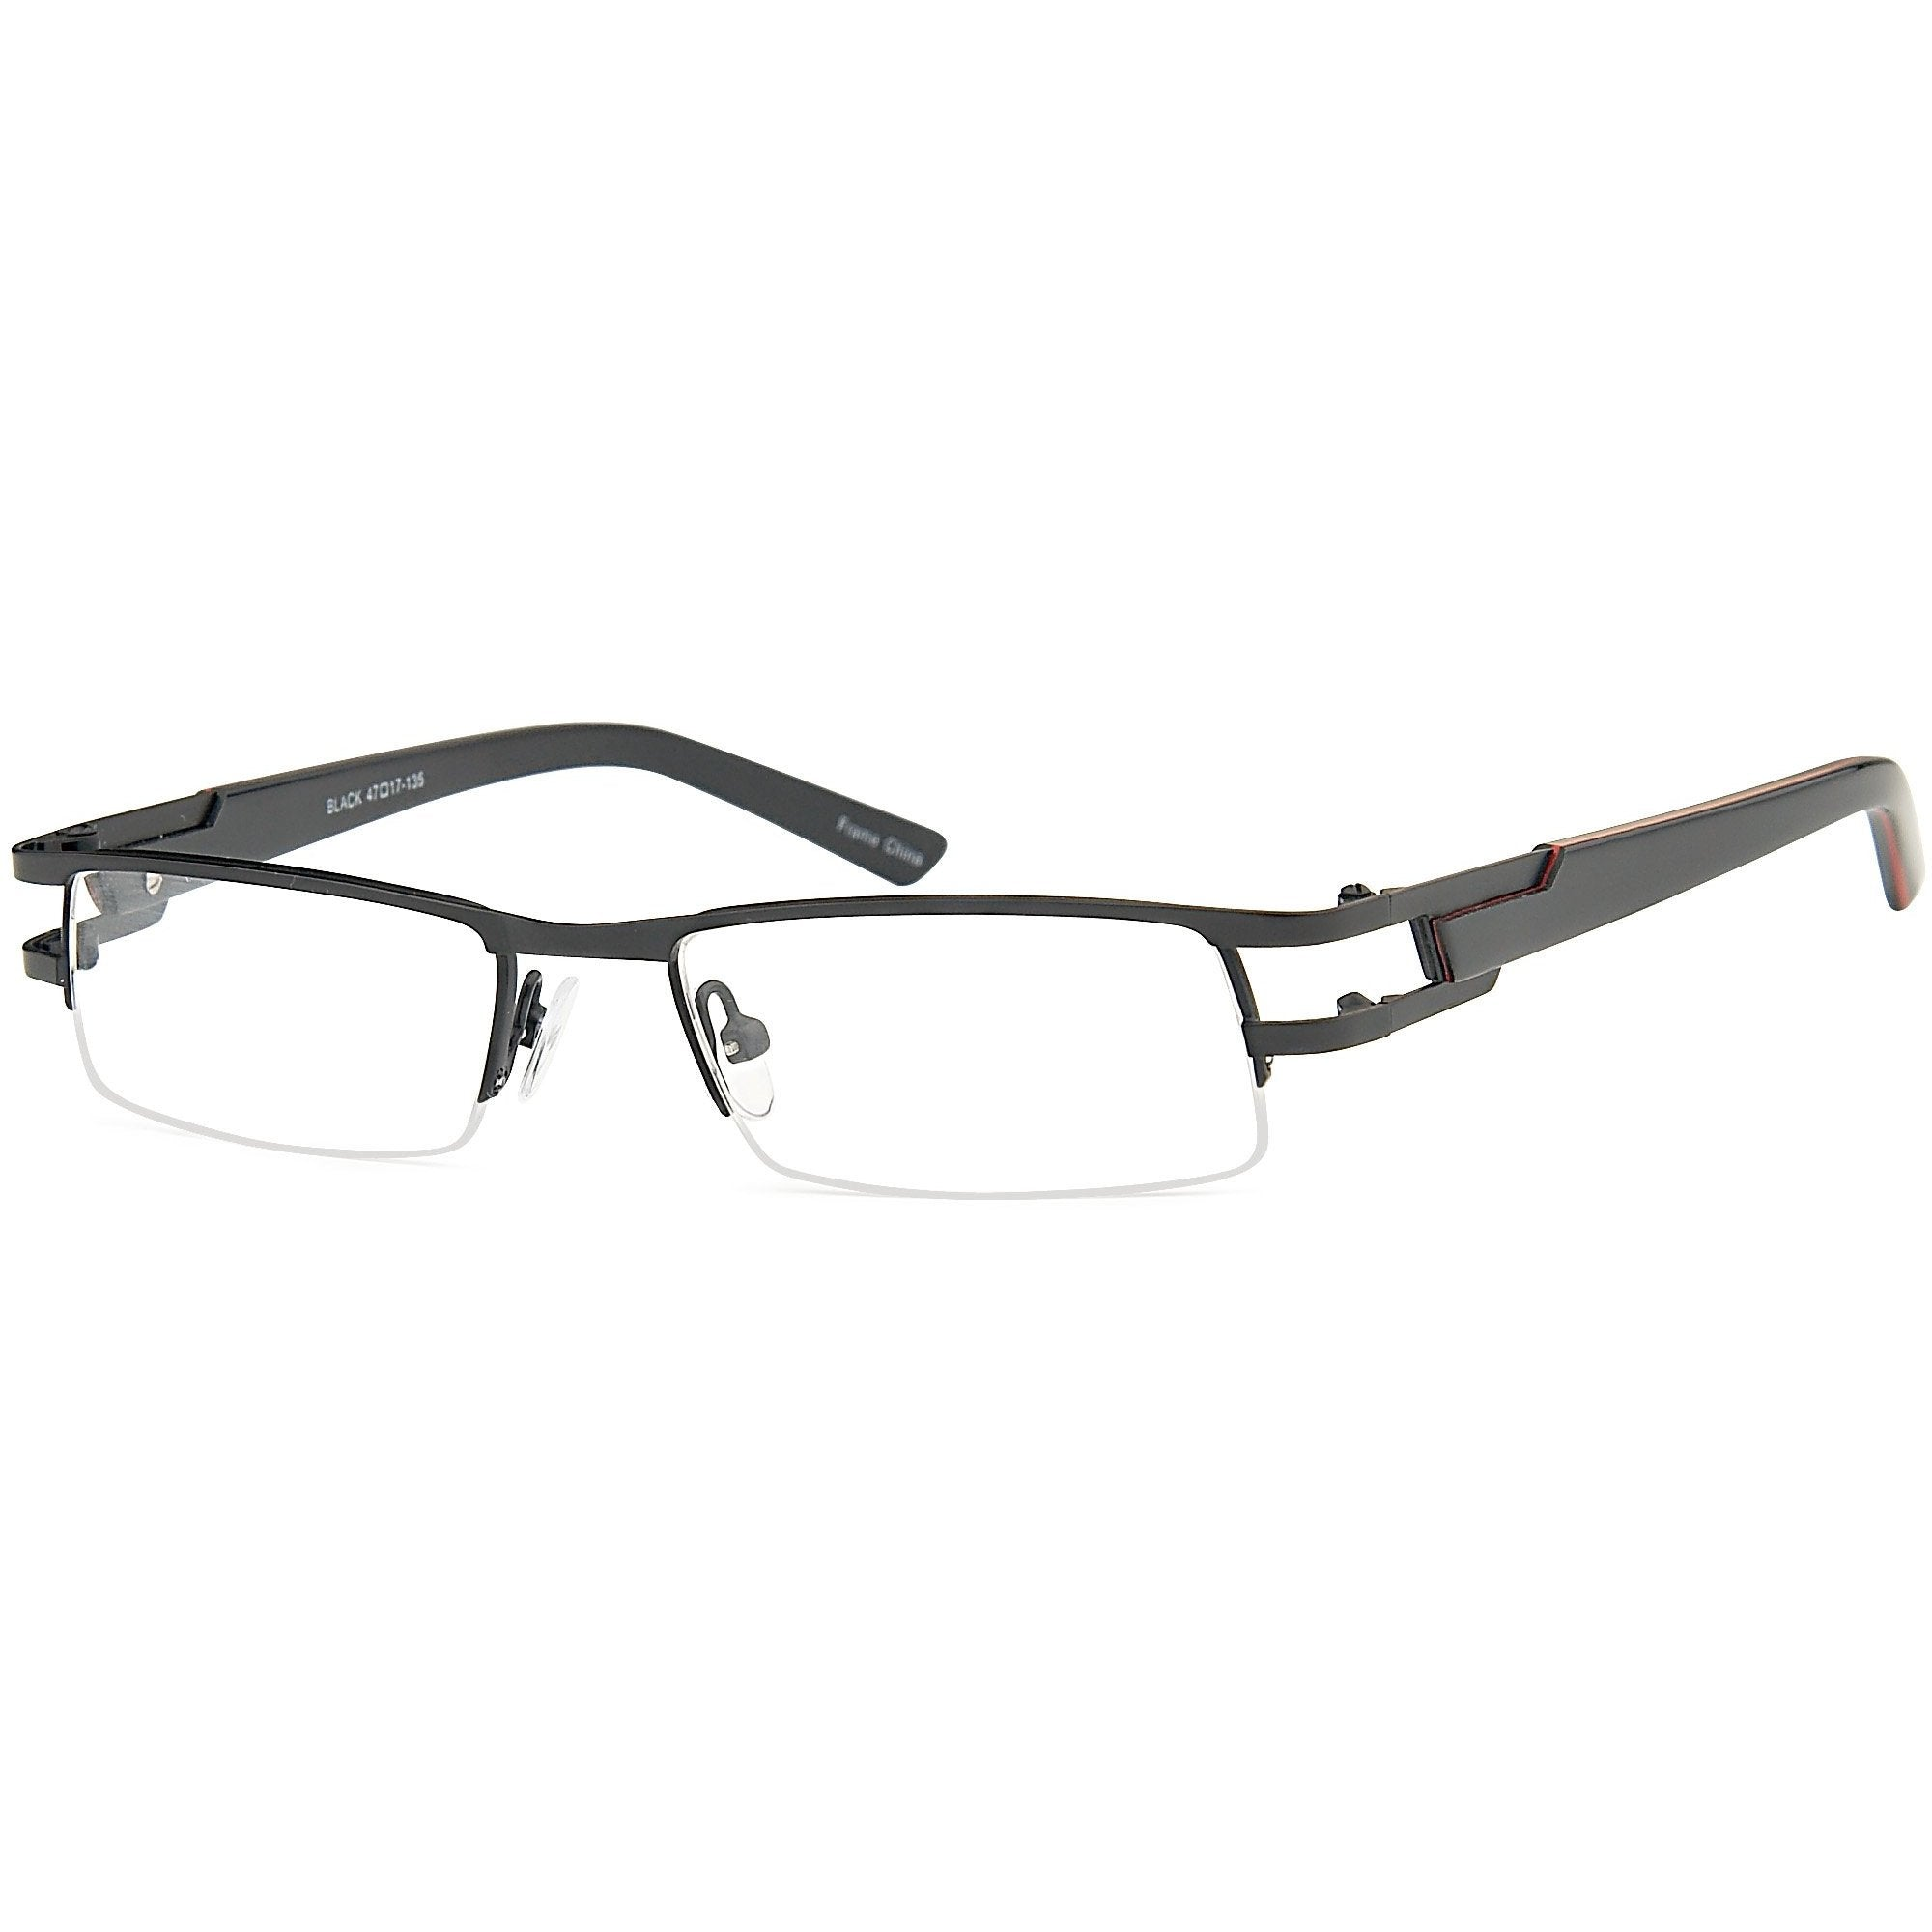 Leonardo Prescription Glasses DC 86 Eyeglasses Frame